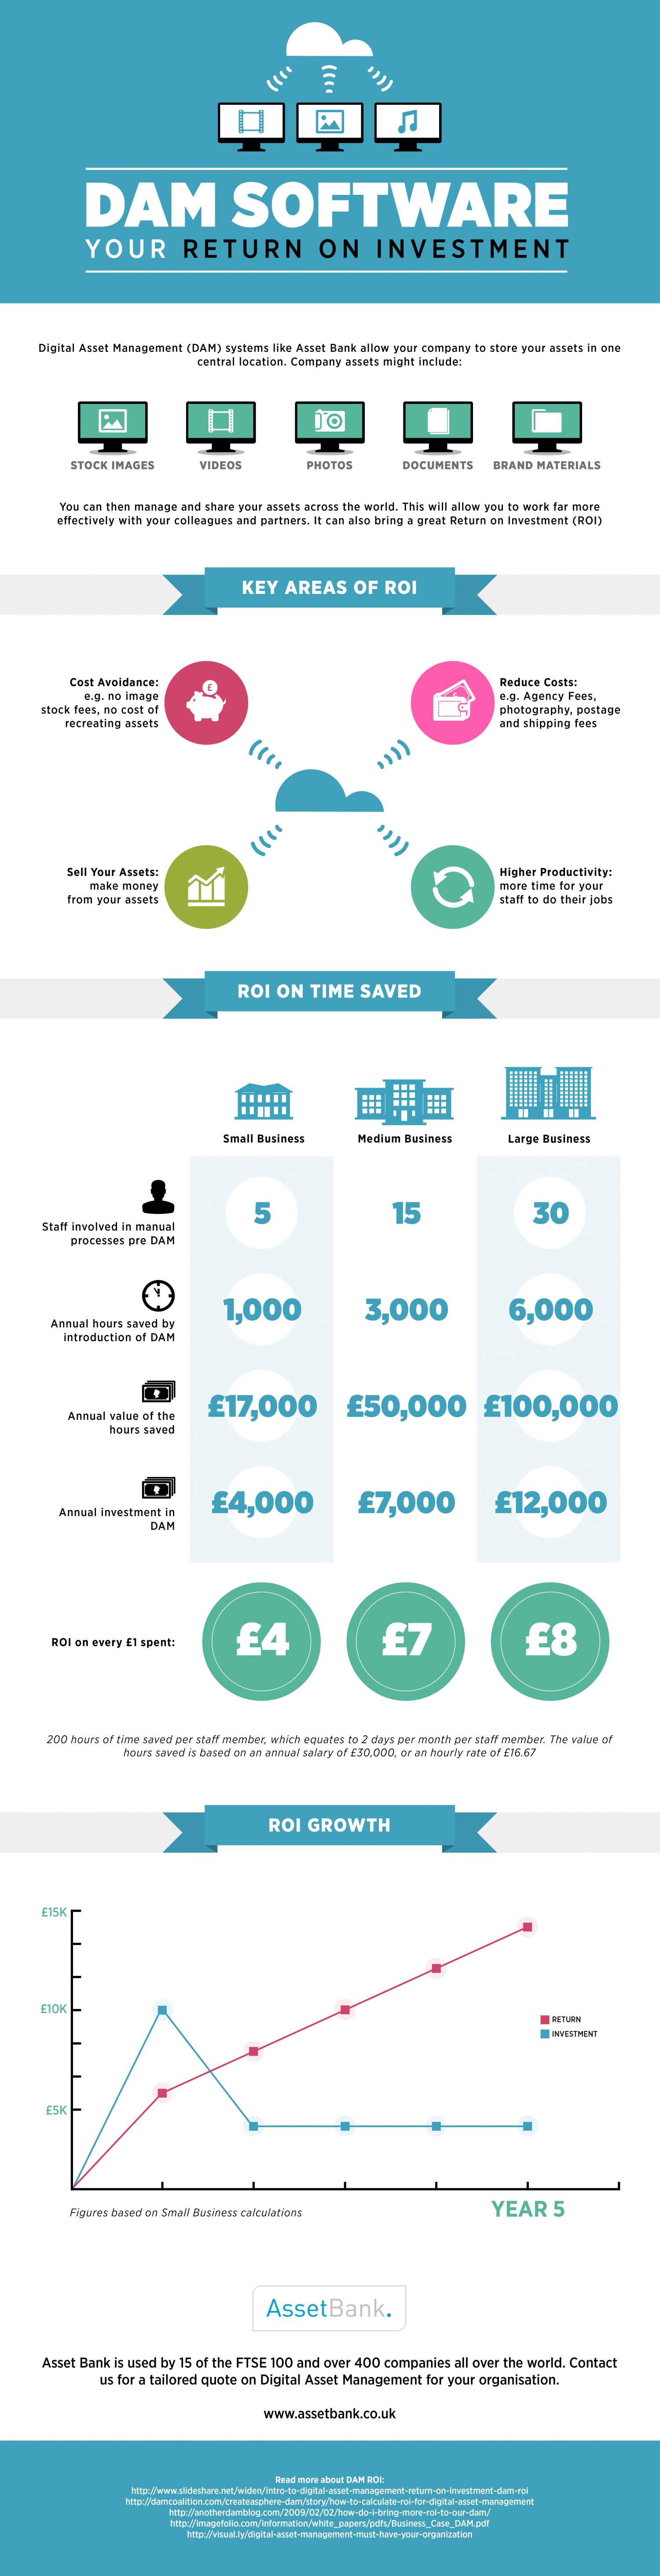 DAM Software: Your Return On Investment Infographic